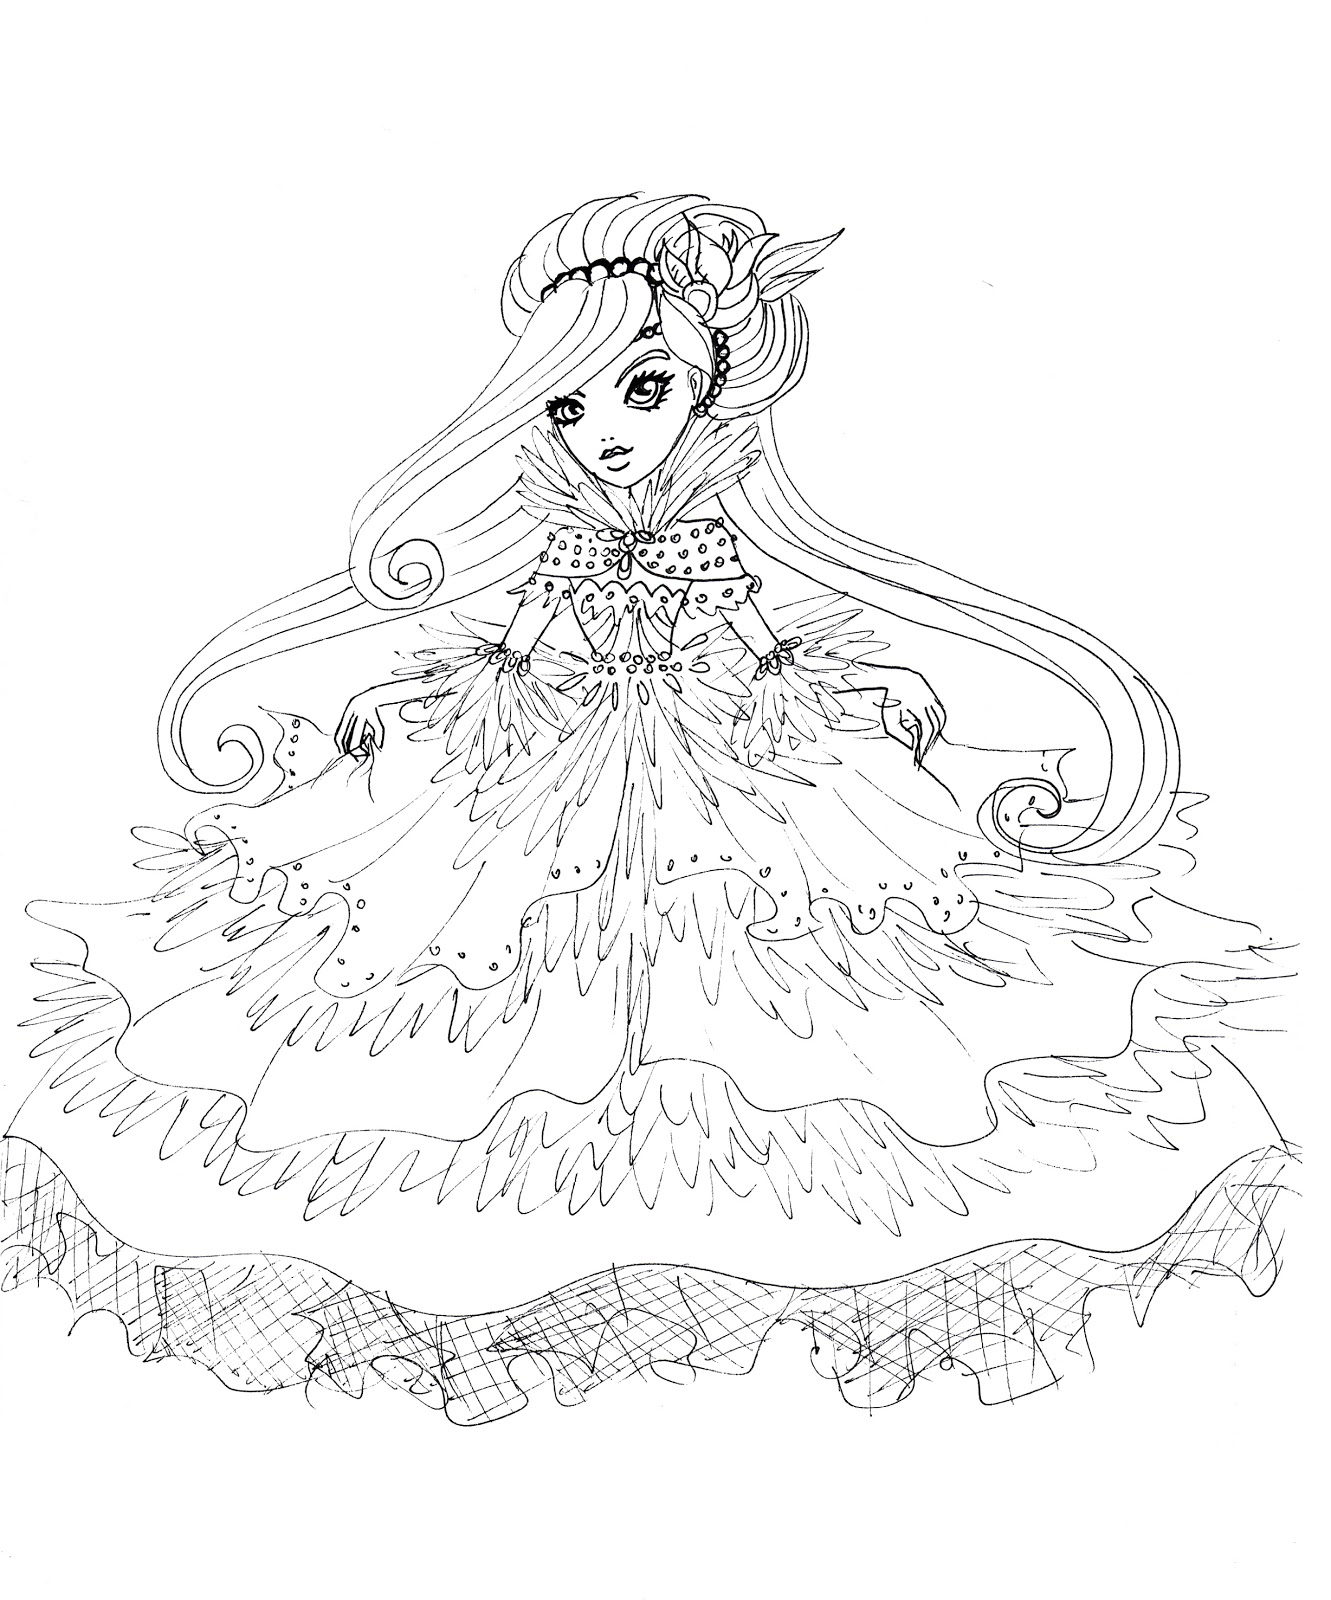 ever after high coloring pages to download and print for free